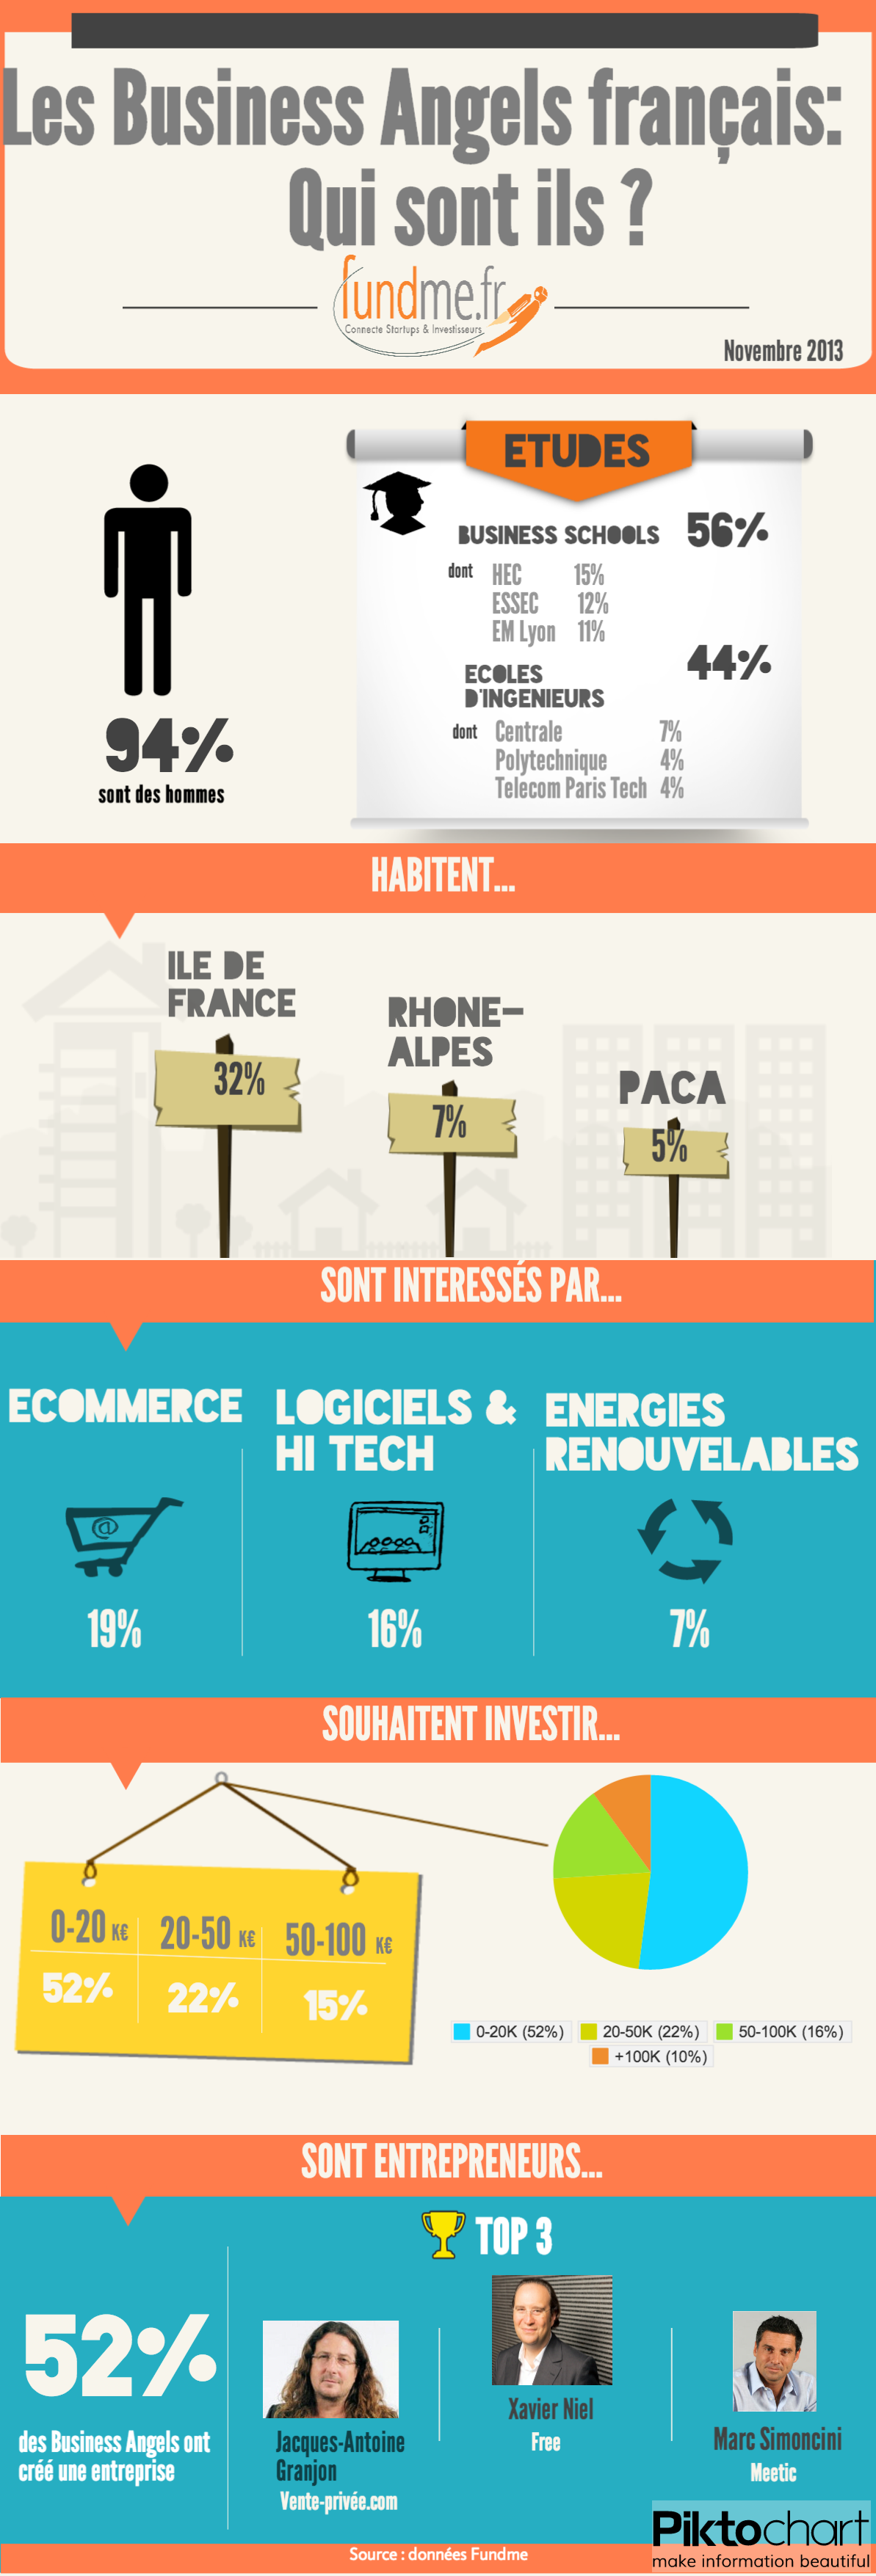 Infographie Fundme - Les Business Angels français